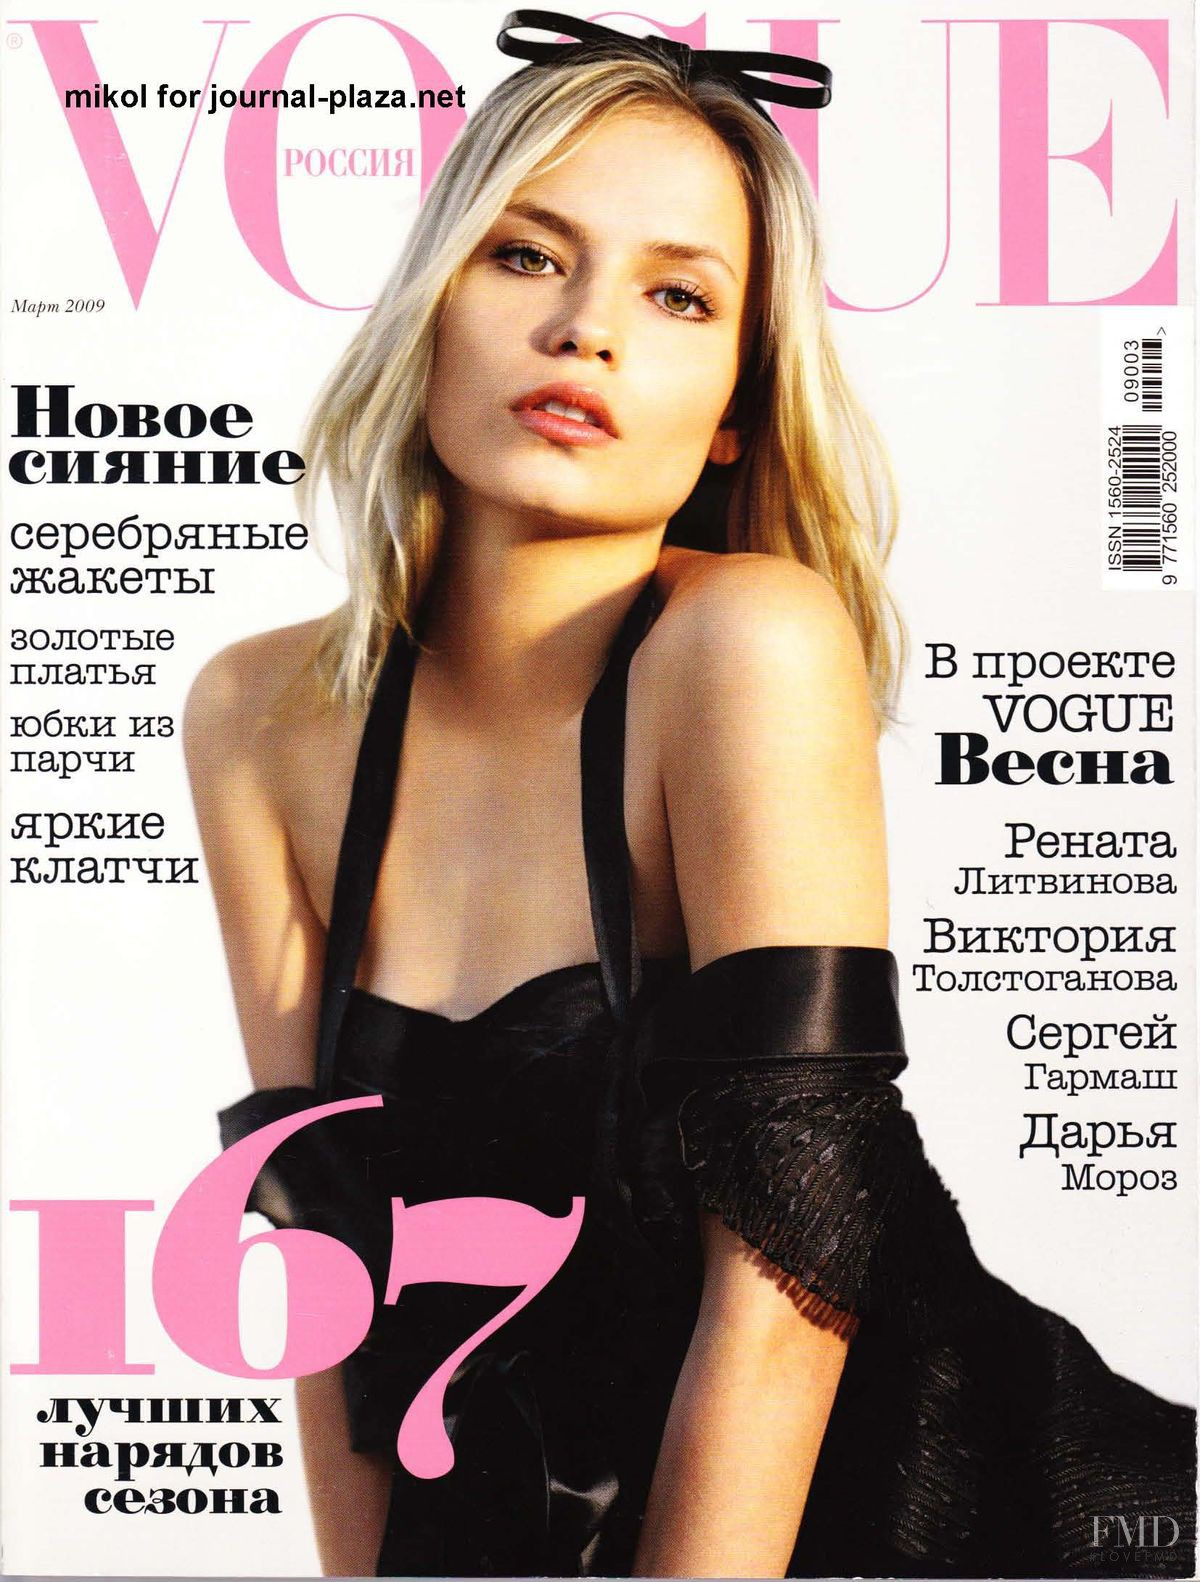 Cover of Vogue Russia with Natasha Poly, March 2009 (ID ...